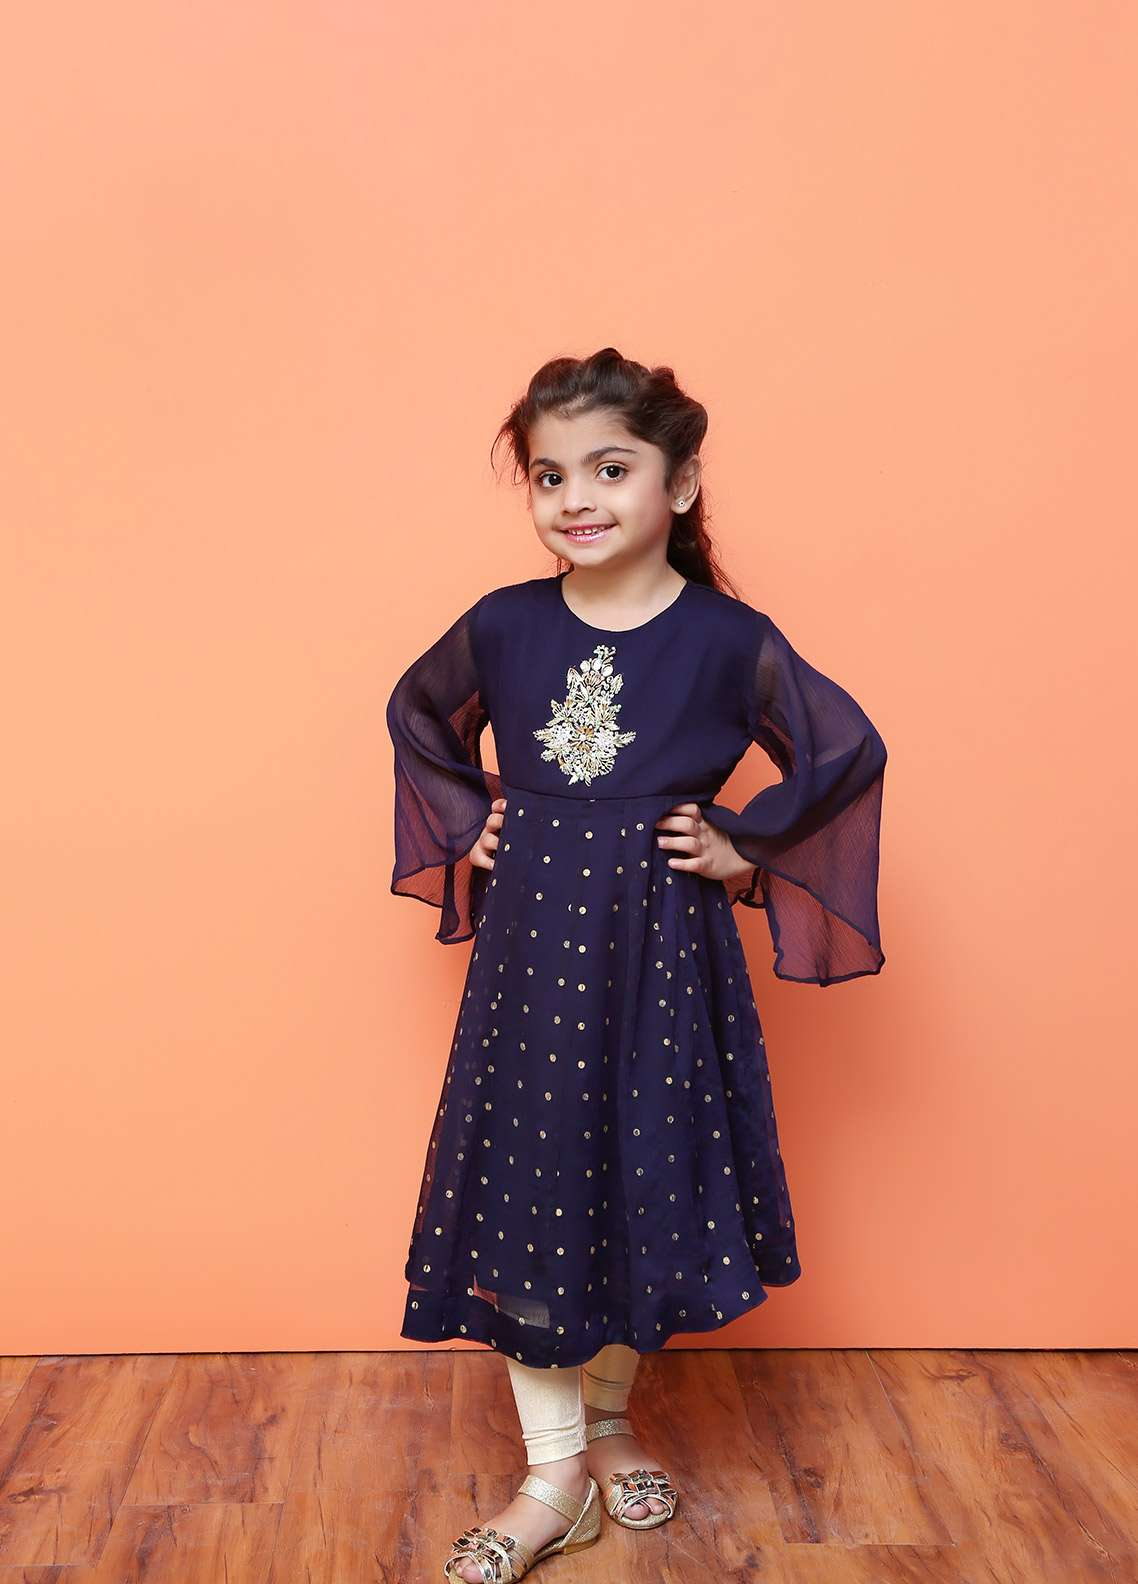 Ochre Chiffon Formal Kurtis for Girls - OFW 190 Navy